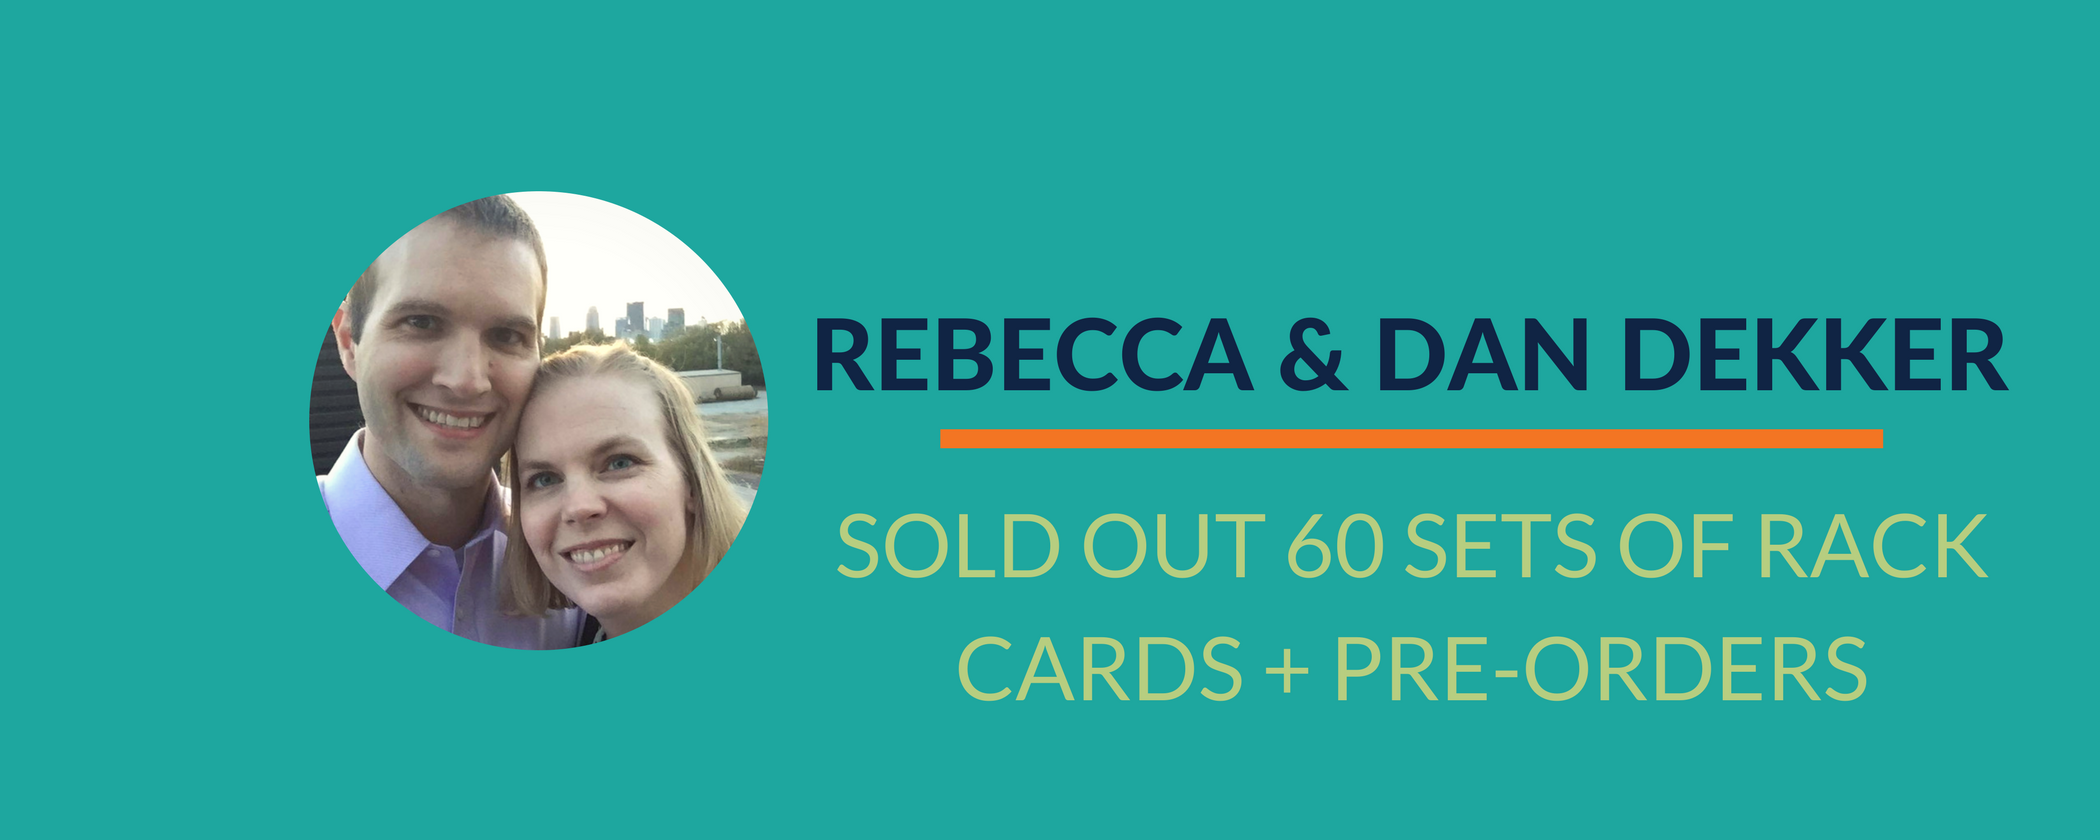 Success Story: The Dekkers SOLD 60 sets of rack cards + pre-orders